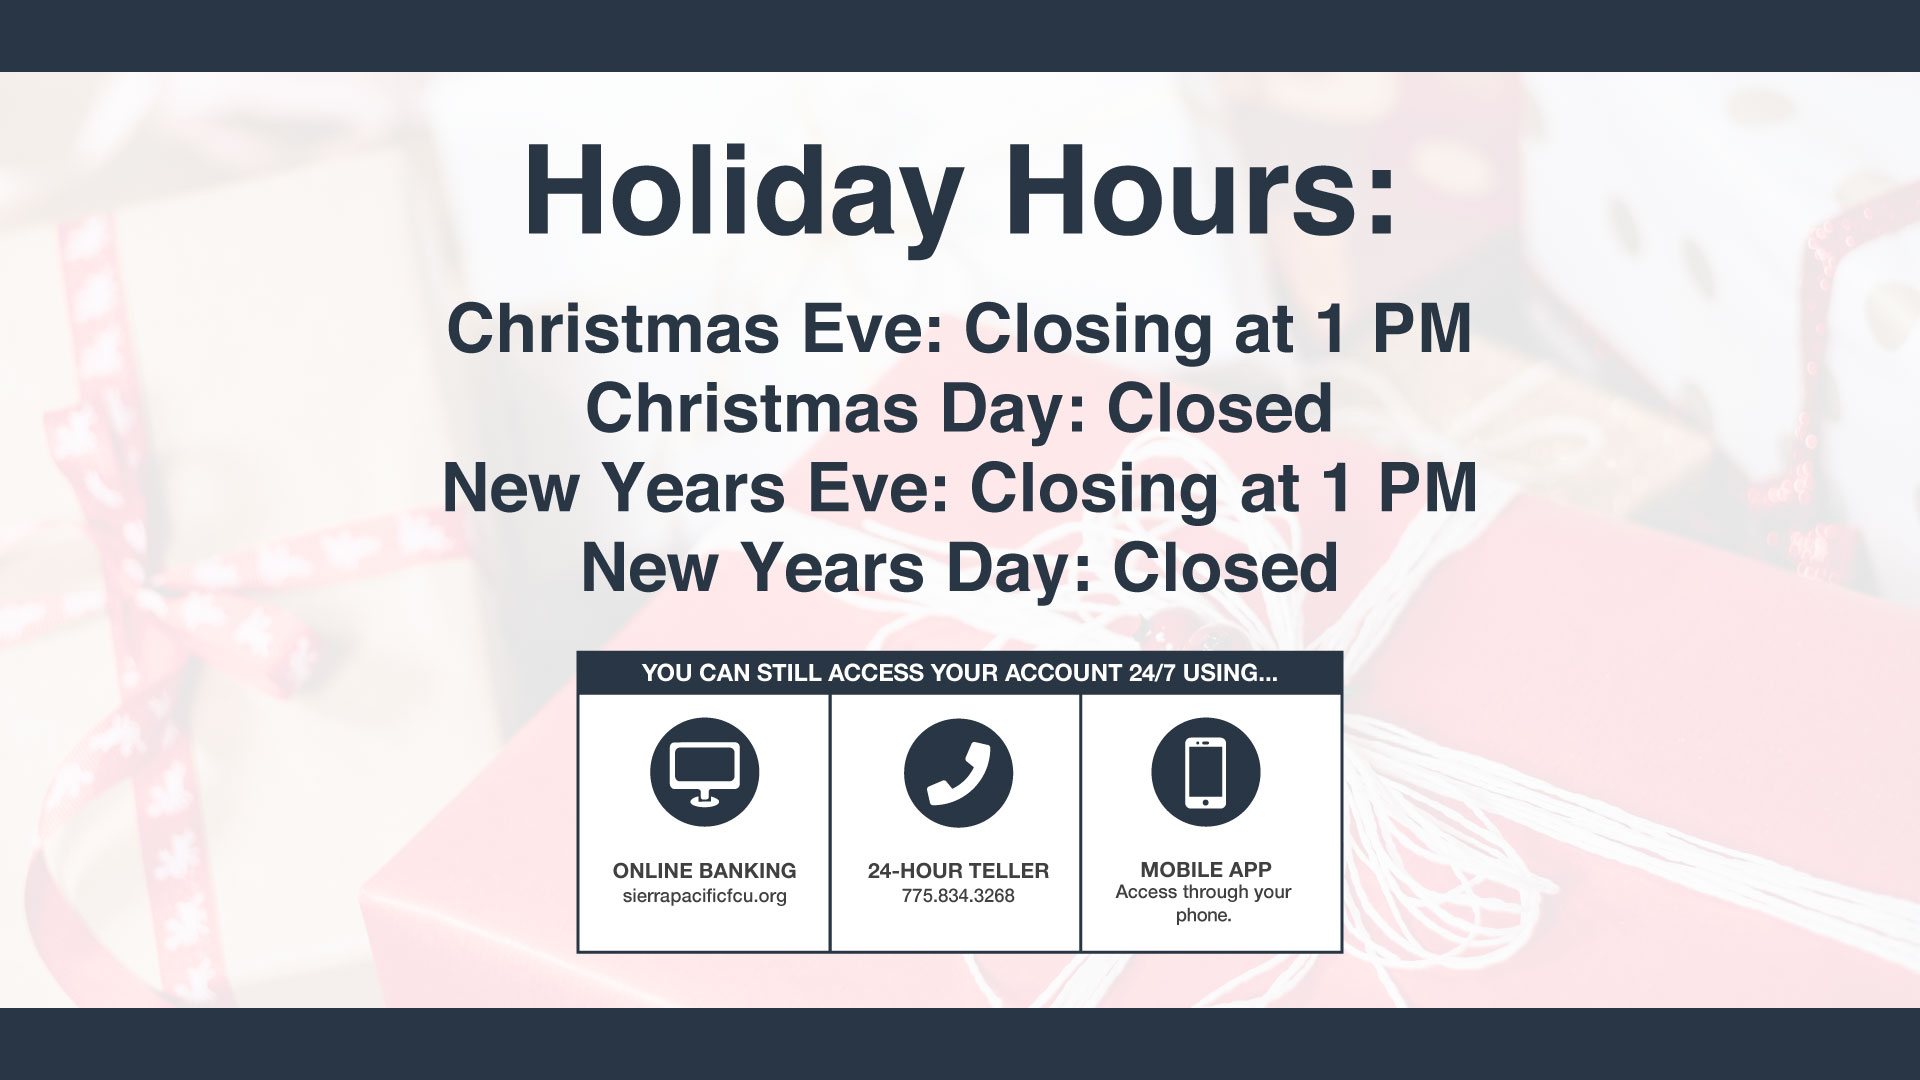 Holiday Hours 2018 Christmas Eve, closing at 1 PM Christmas Day, Closed New Year's Eve, closing at 1 pm New Years Day, Closed